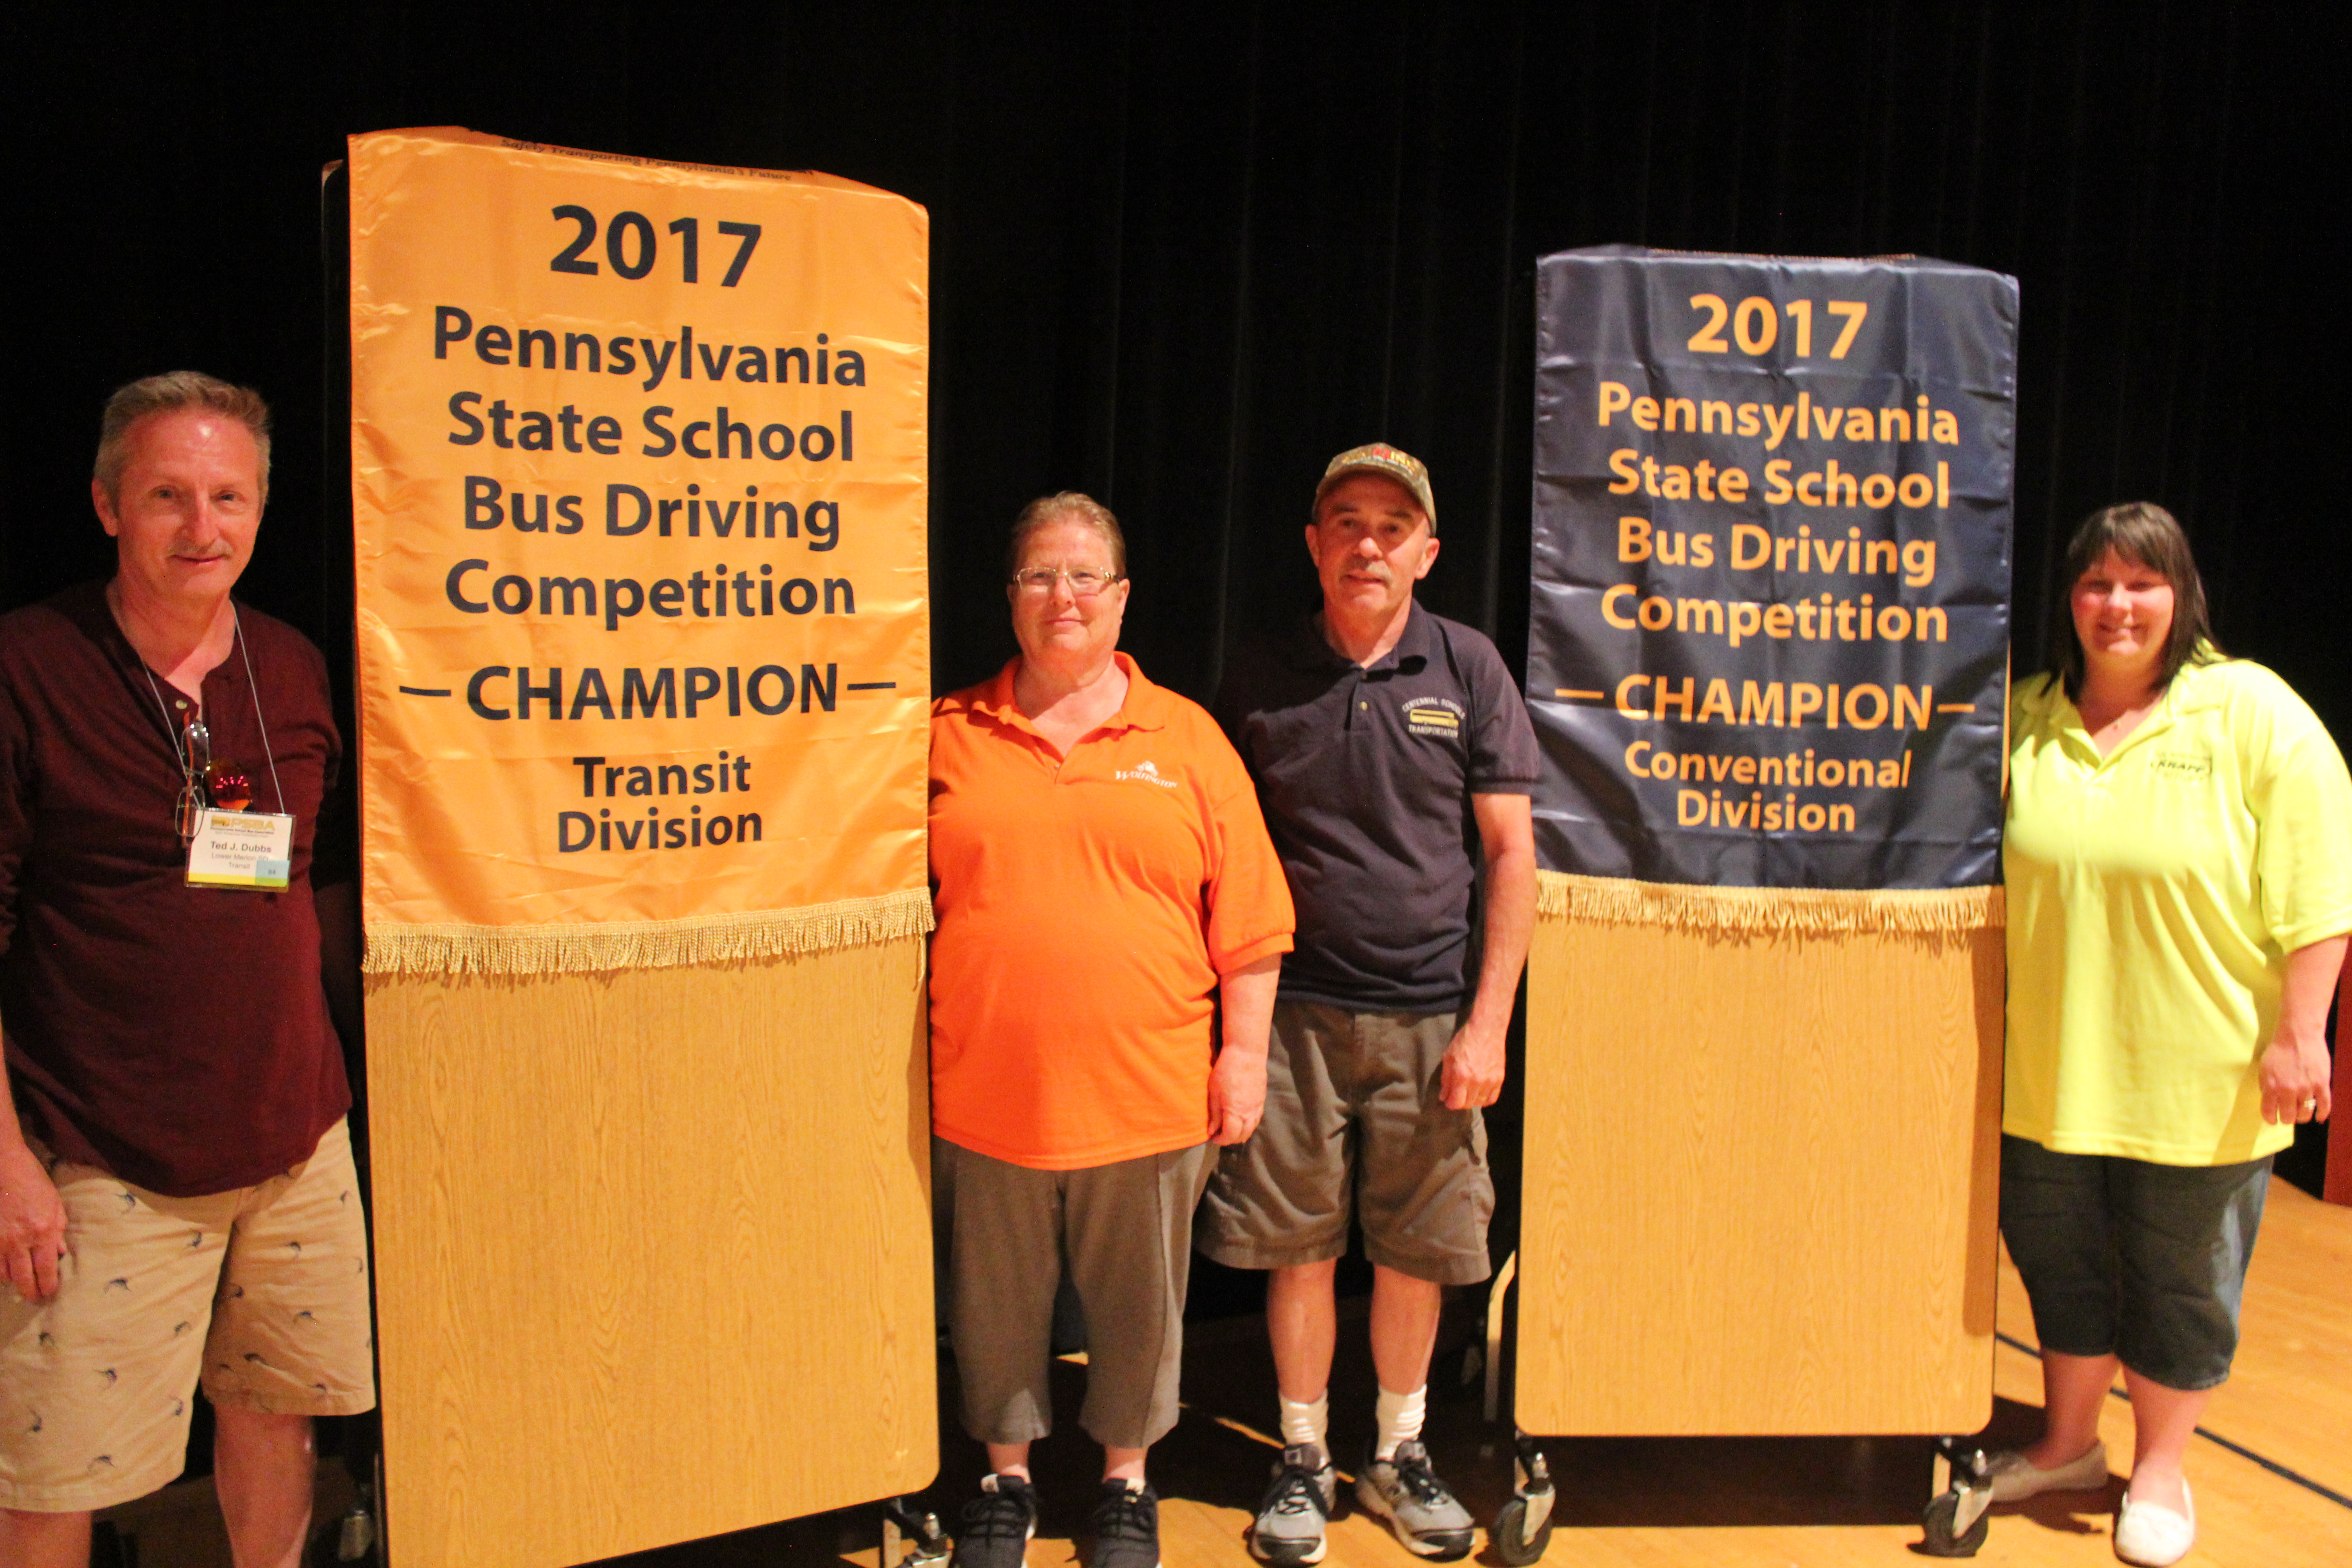 2017 PENNSYLVANIA SCHOOL BUS DRIVER SAFETY COMPETITION RESULTS; STATE'S DRIVERS FINISH IN TOP 10 AT INTERNATIONAL COMPETITION